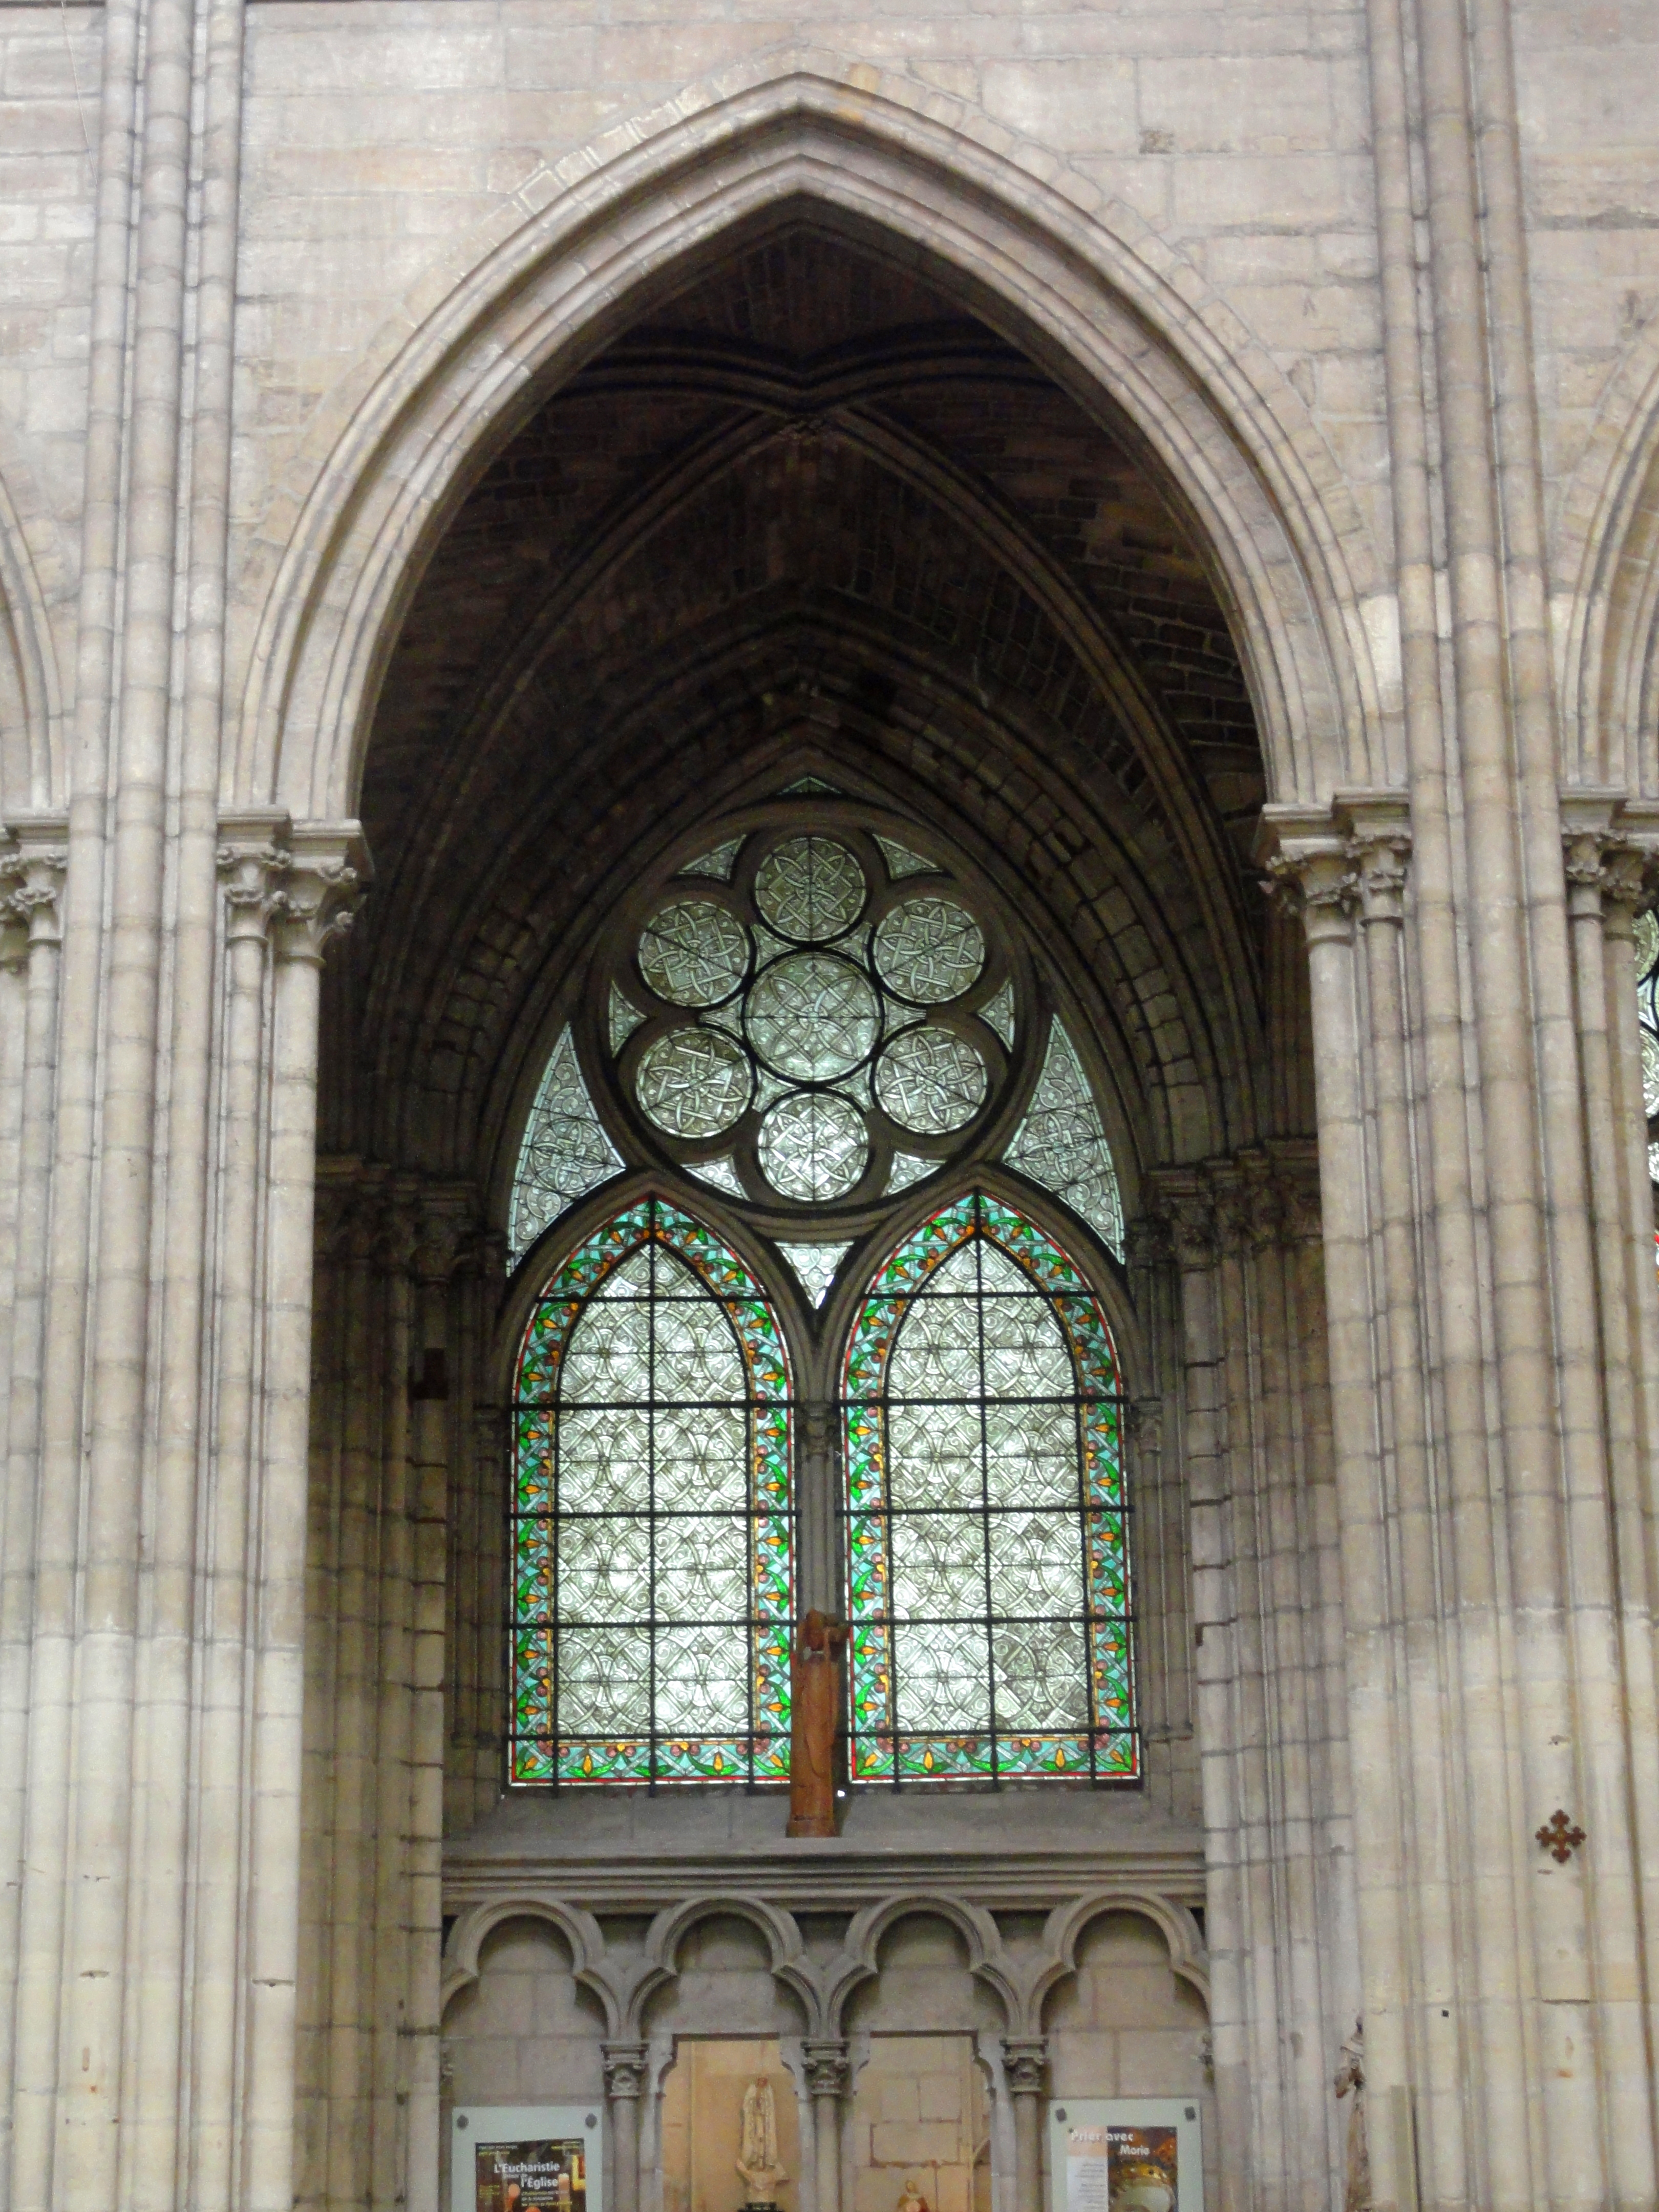 Antique Gothic Pointed Arch Window.